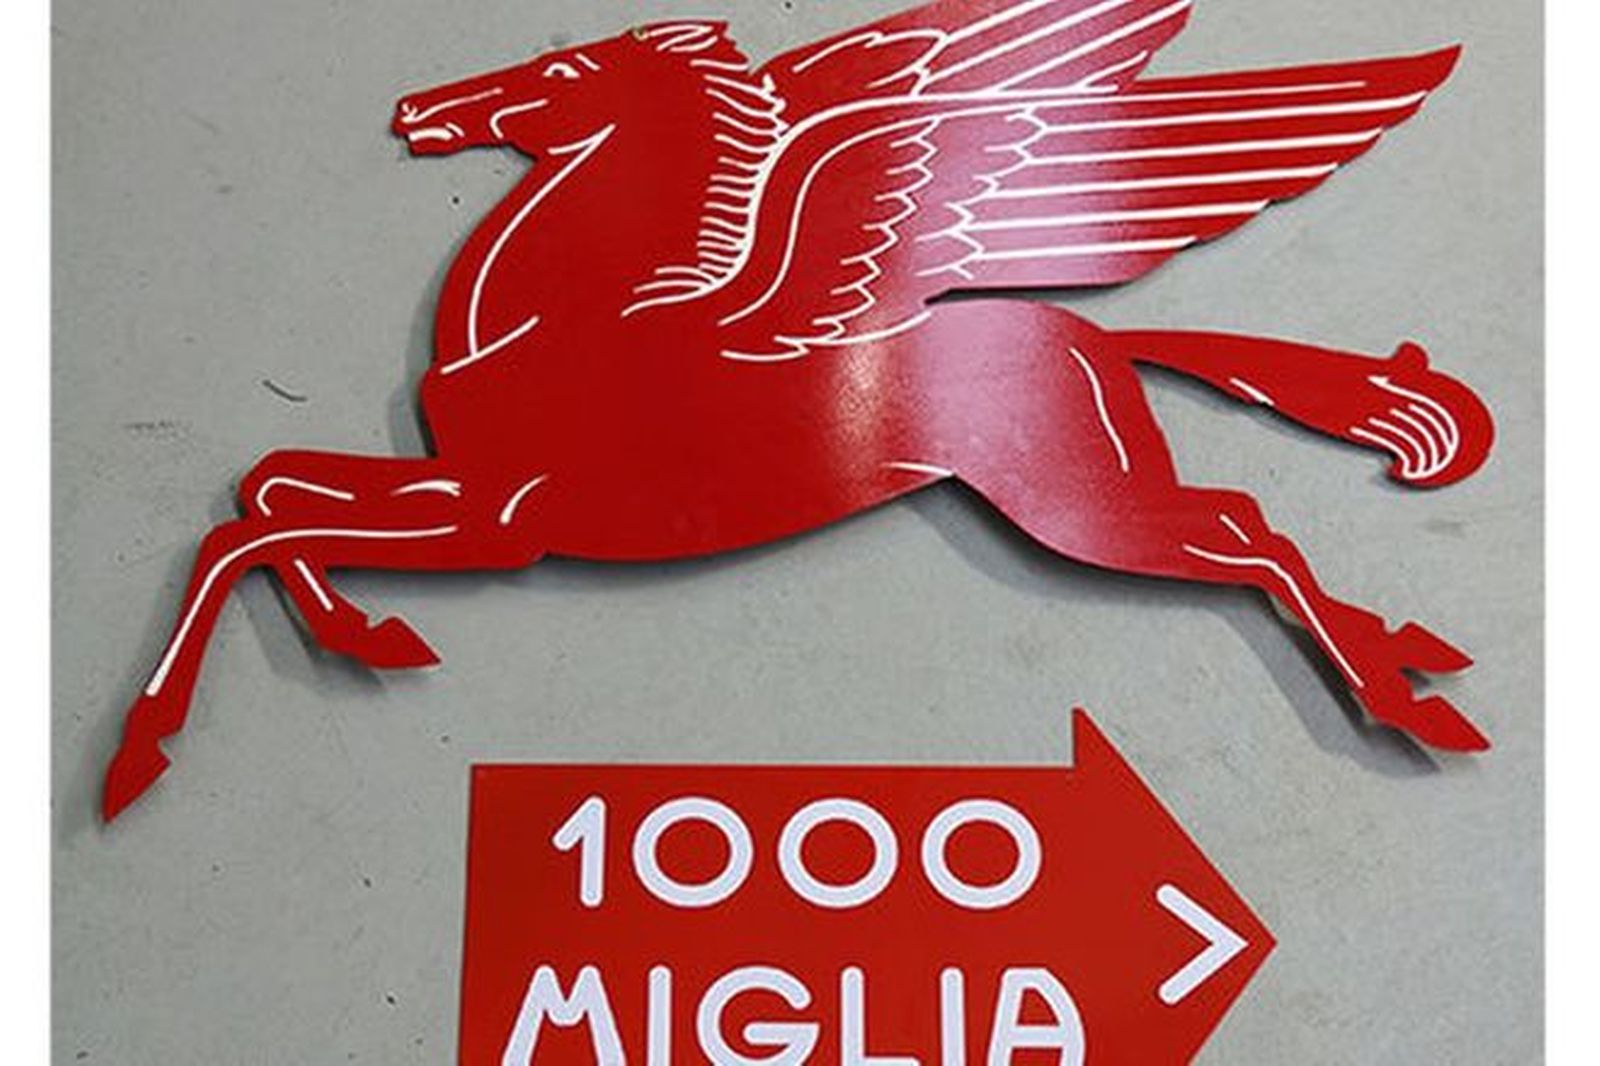 Tin Signs x 2 - Large Mobilgas Pegasus & Mille Miglia (Reproduction)